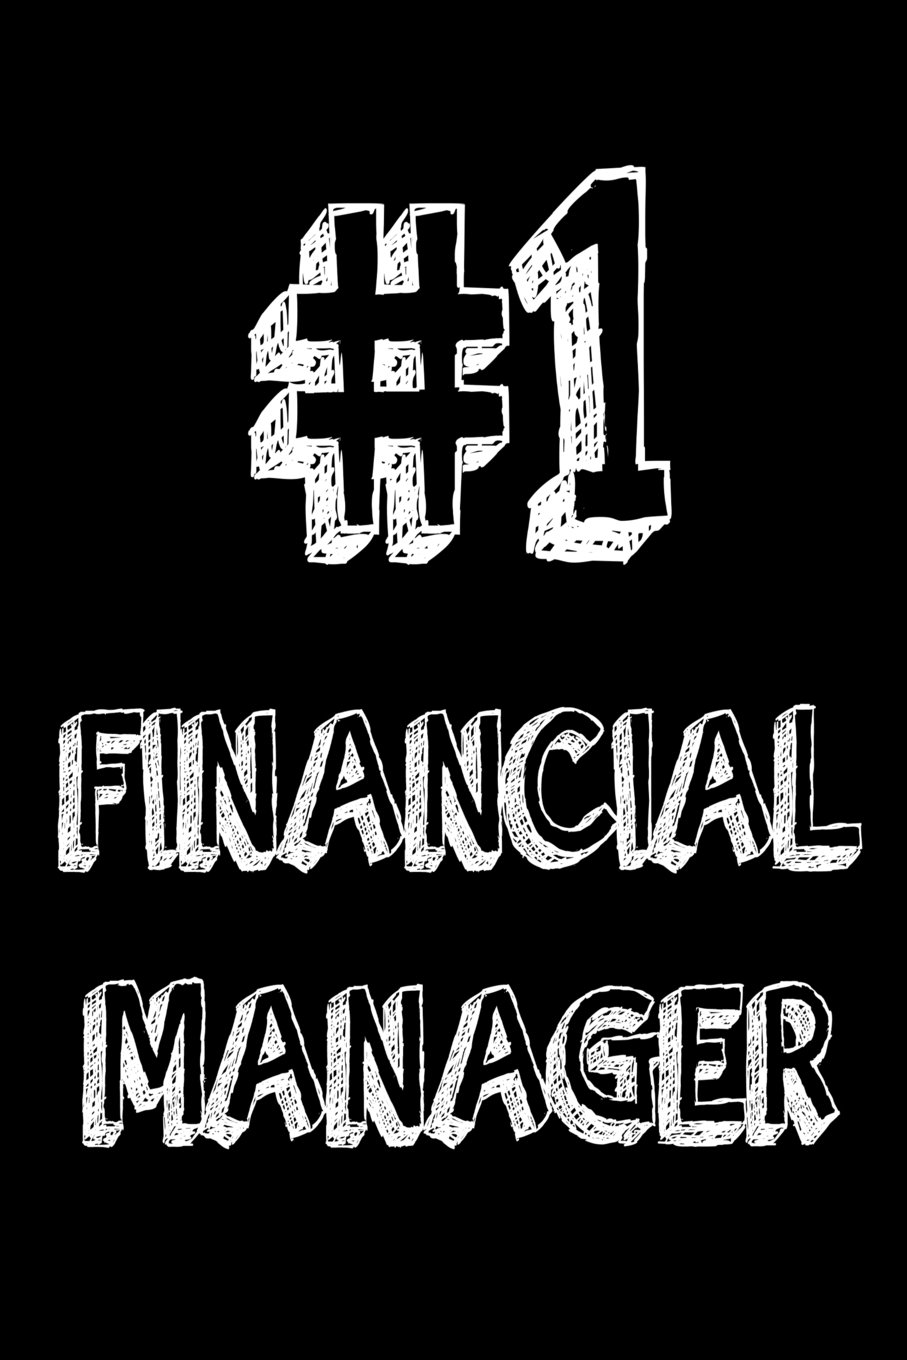 1 Financial Manager Best Financial Manager Ever Appreciation Gift Notebook Publishing Creative Juices 9781721159413 Amazon Com Books